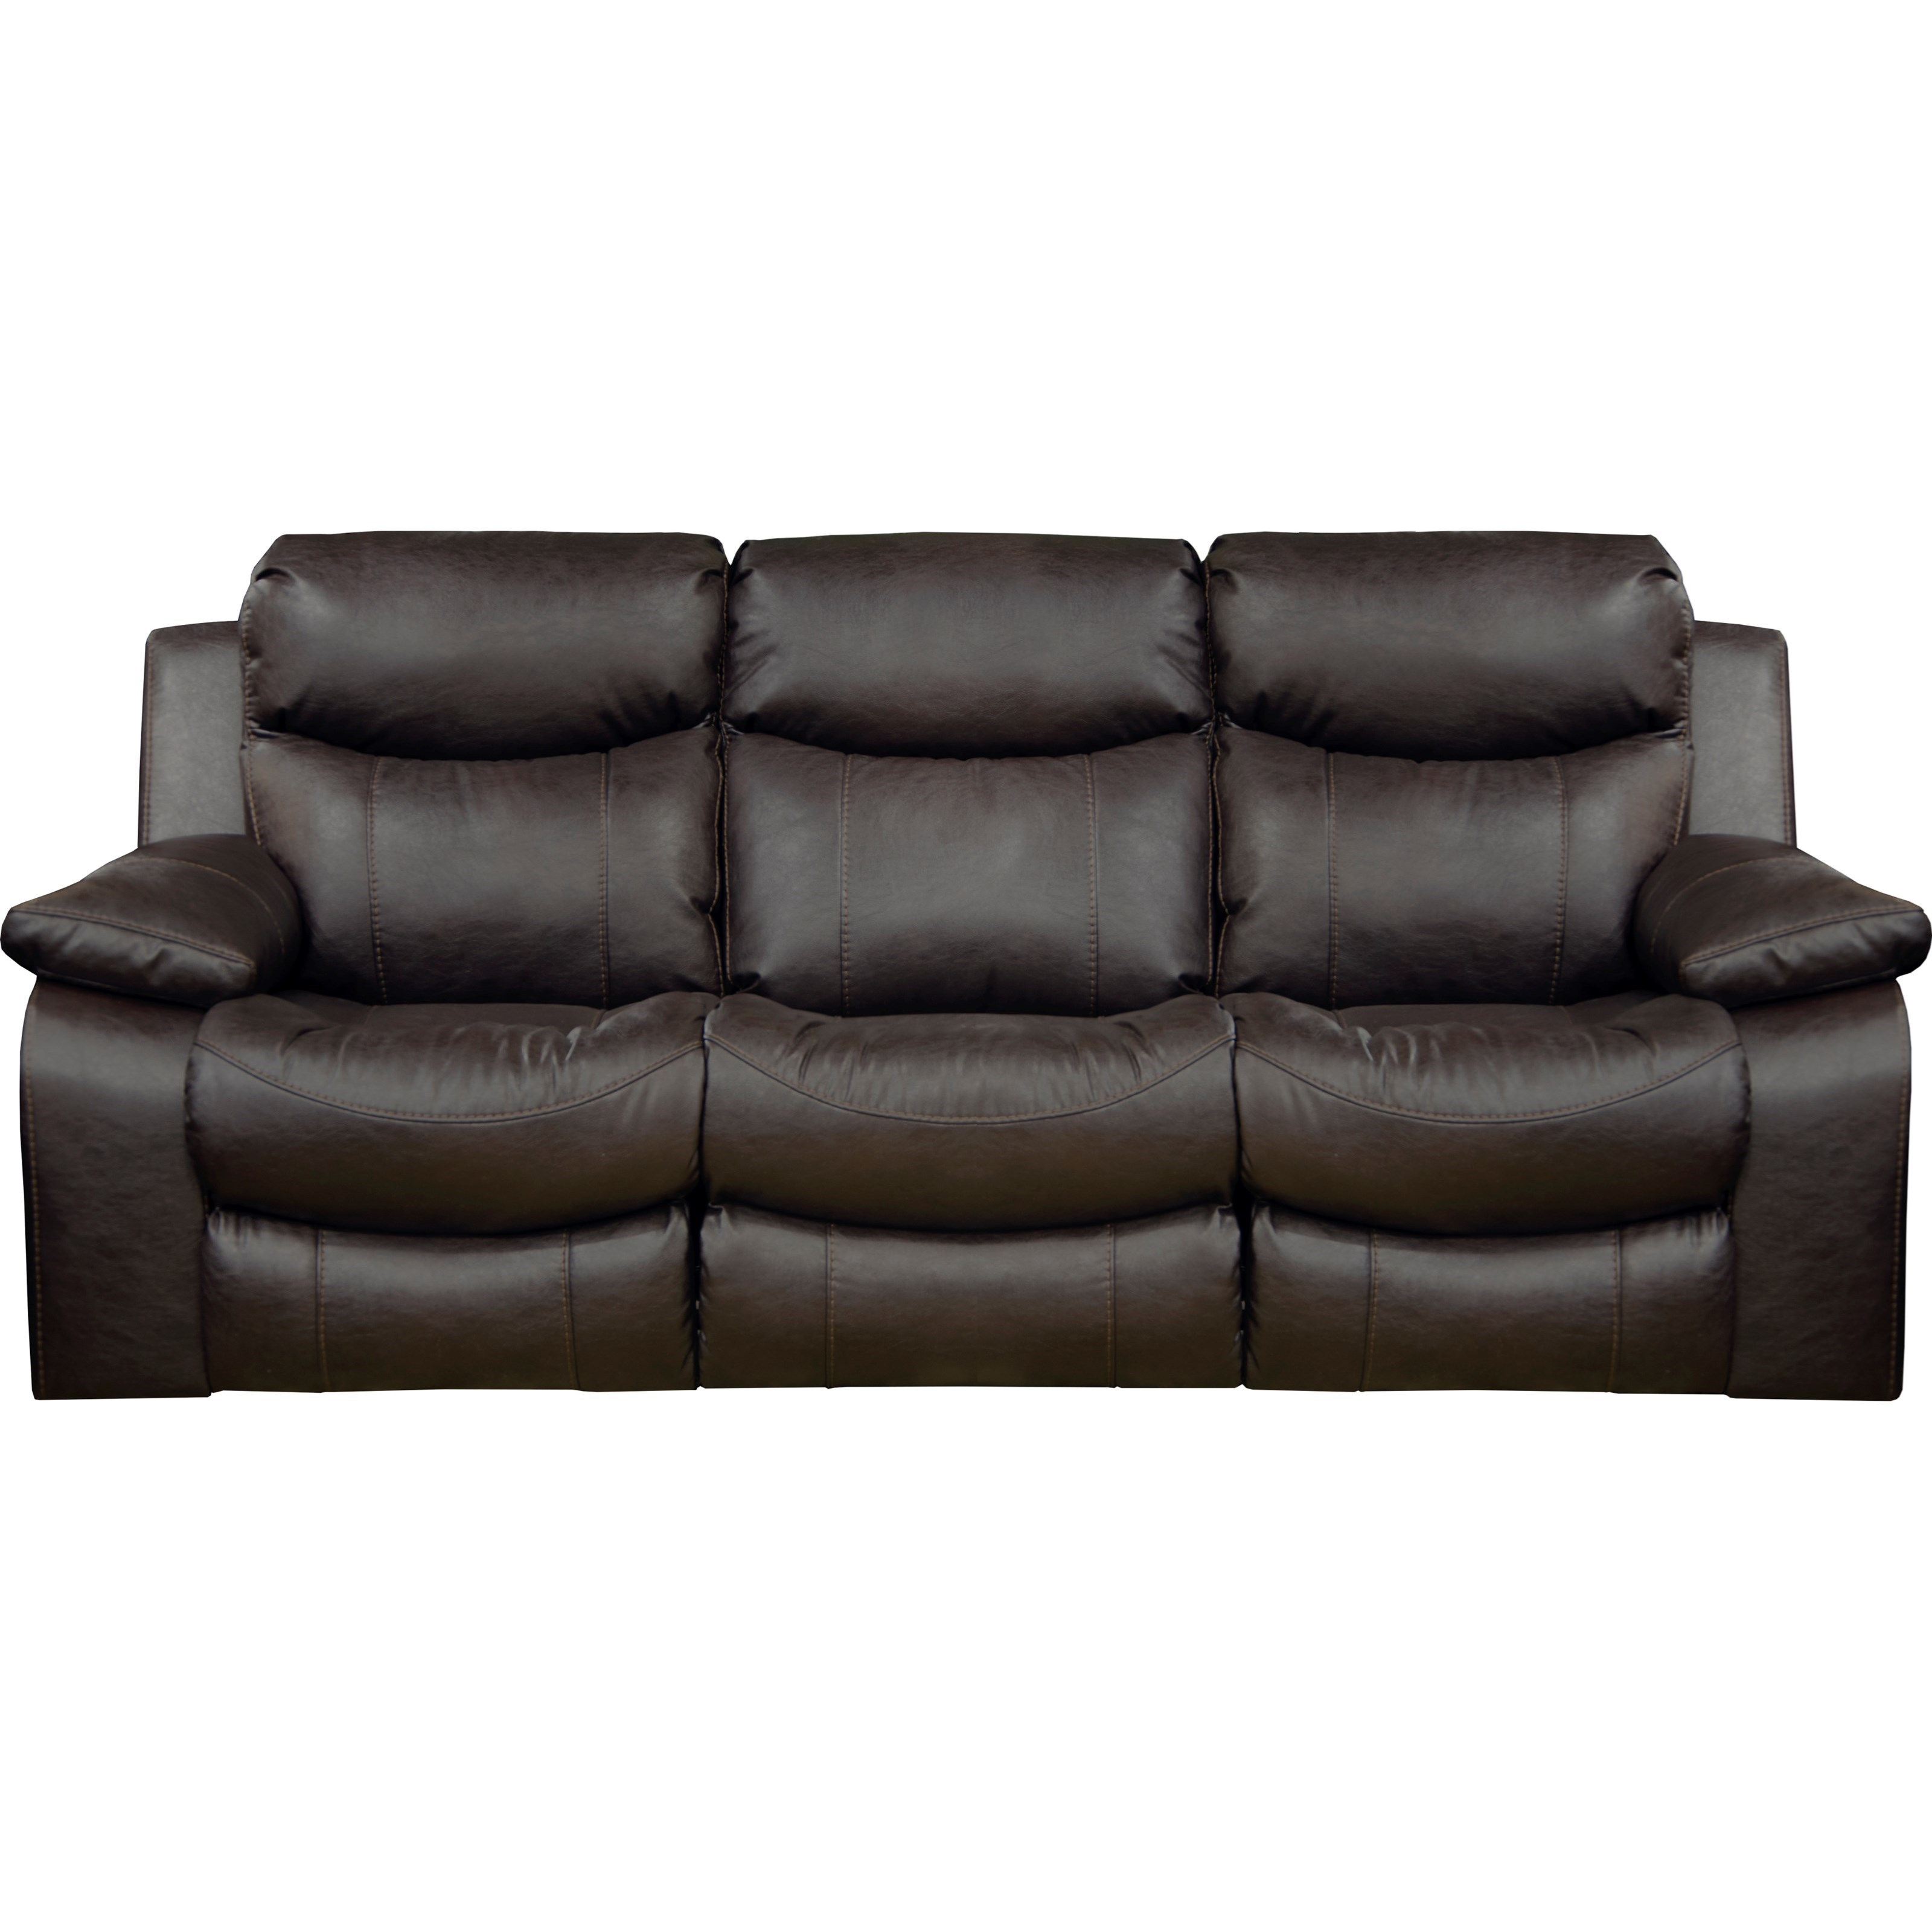 catnapper sofas and loveseats visconti 2 piece premium fabric sofa loveseat set connor casual lay flat power reclining with